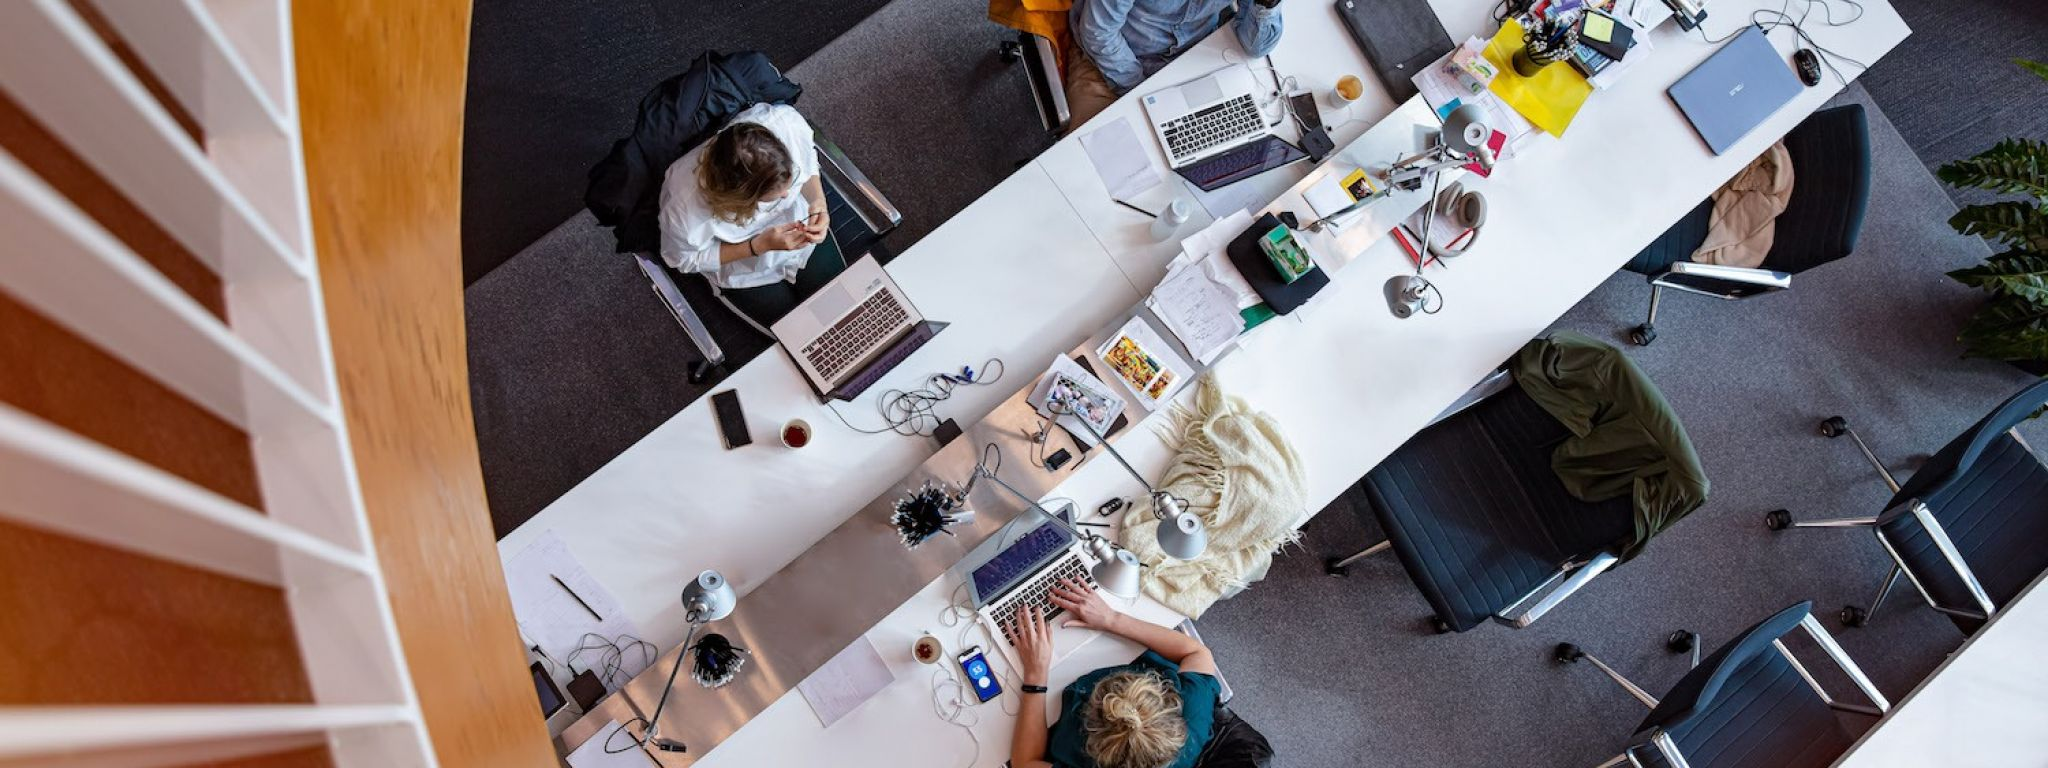 3 Learnings in the change management process towards a flexible working style